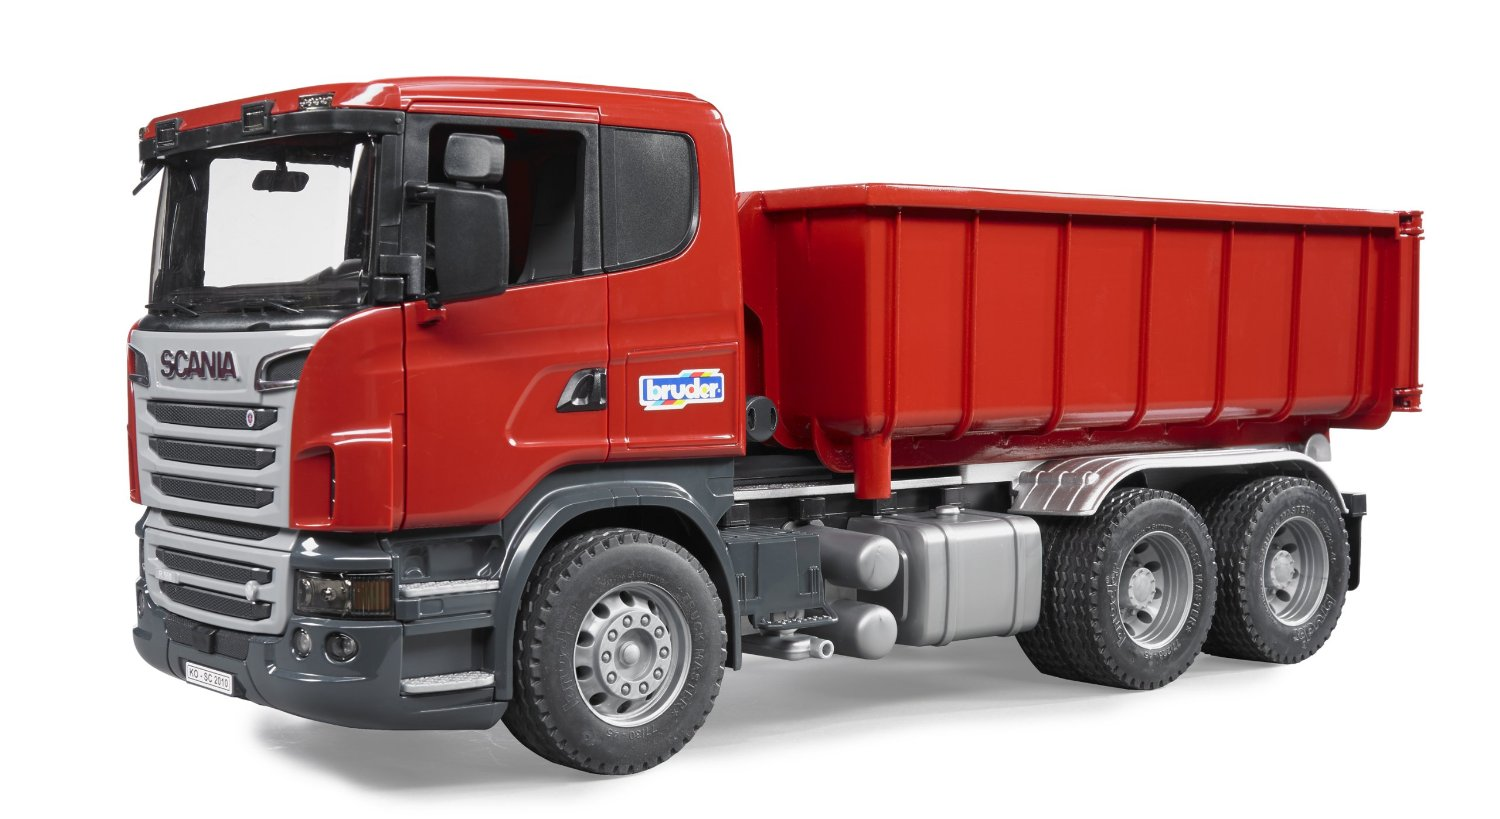 Bruder Scania Truck with Roll of Container